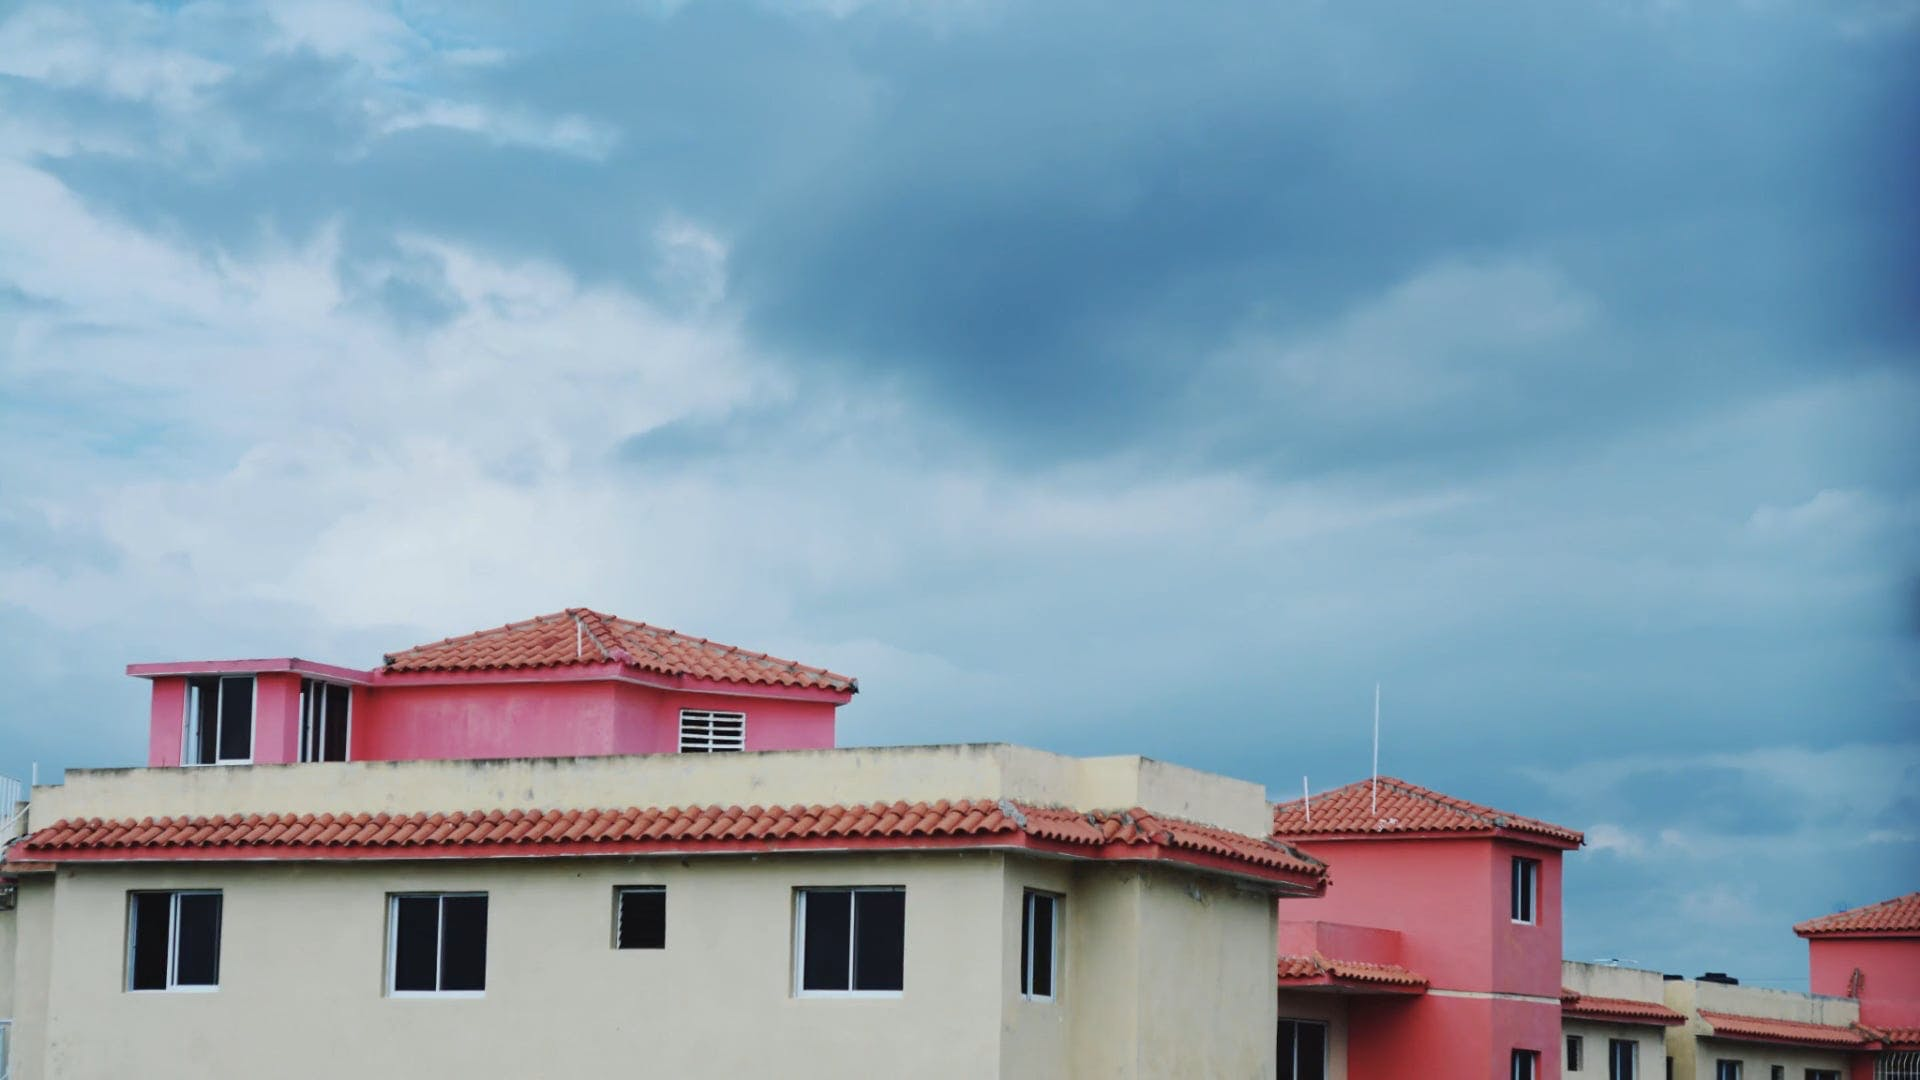 Clouds Over Houses